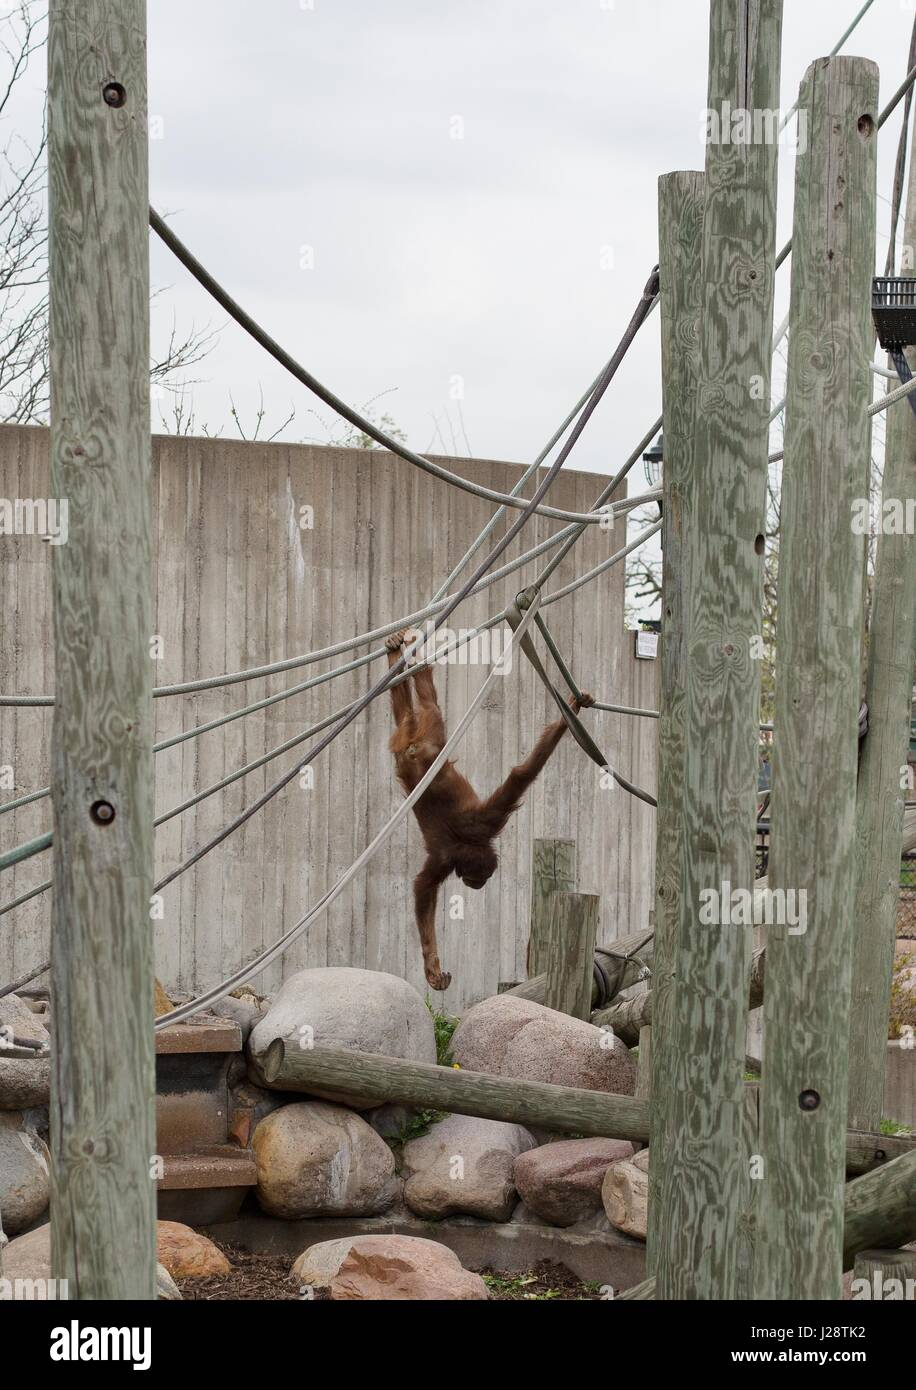 A young orangutan swings from ropes in an outdoor enrichment area at the Como Zoo in St. Paul, Minnesota, USA. - Stock Image